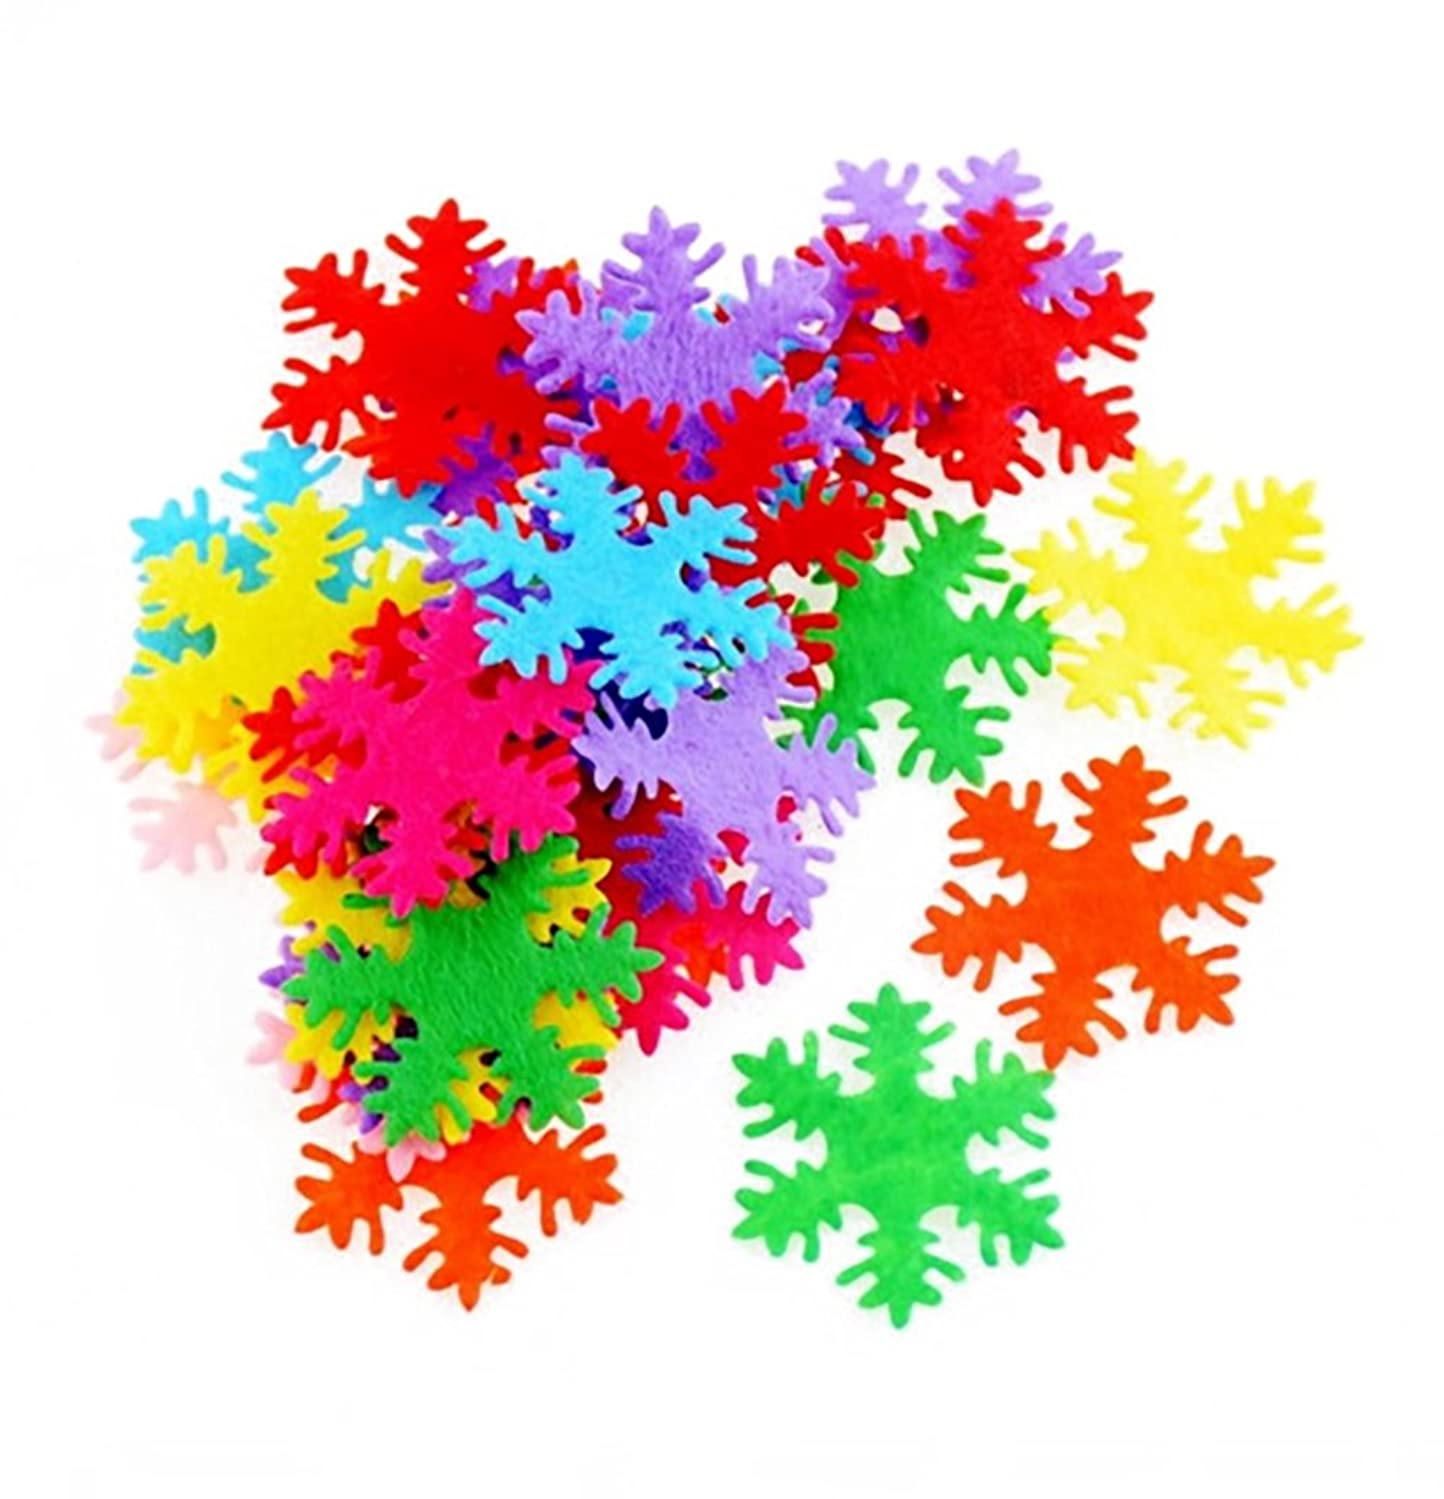 200PCS Assorted Shape Multicolor Fabric Embellishments Felt Pads Appliques for DIY Craft Decoration and Sewing Handcraft (Snowflake shape)